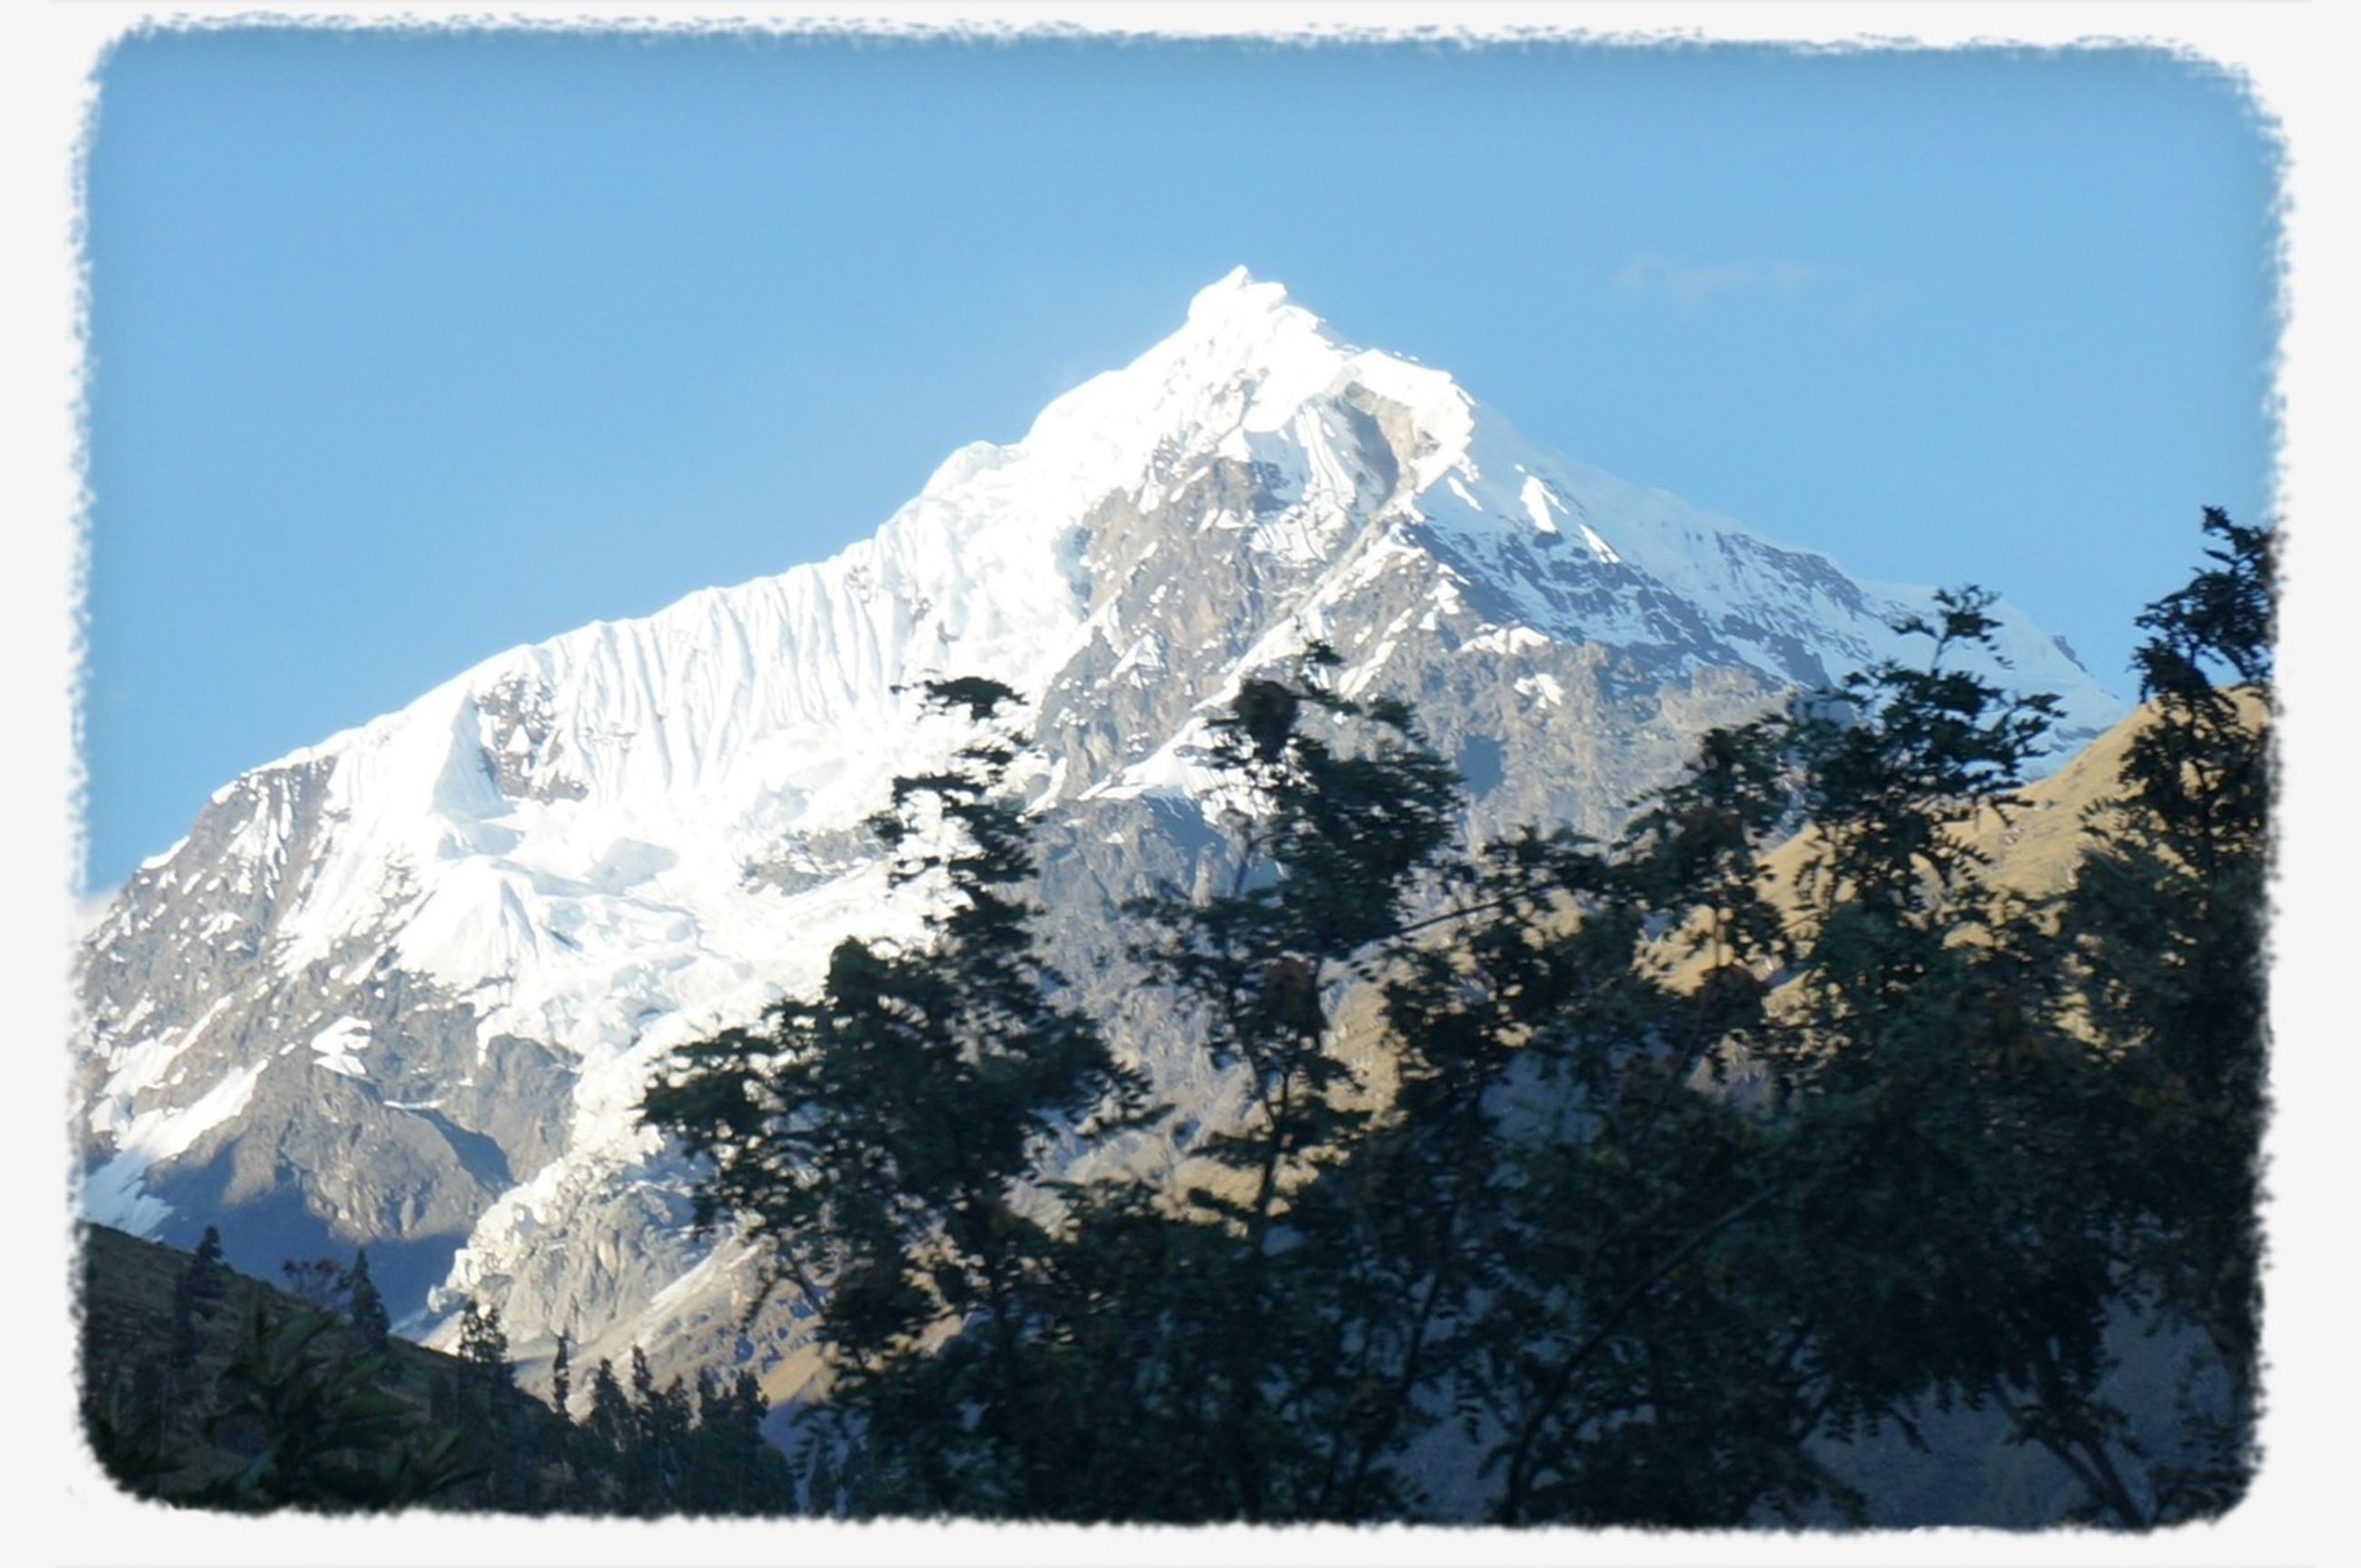 snow, cold temperature, mountain, winter, snowcapped mountain, transfer print, season, tranquility, scenics, tranquil scene, mountain range, beauty in nature, clear sky, blue, nature, weather, auto post production filter, low angle view, sky, majestic